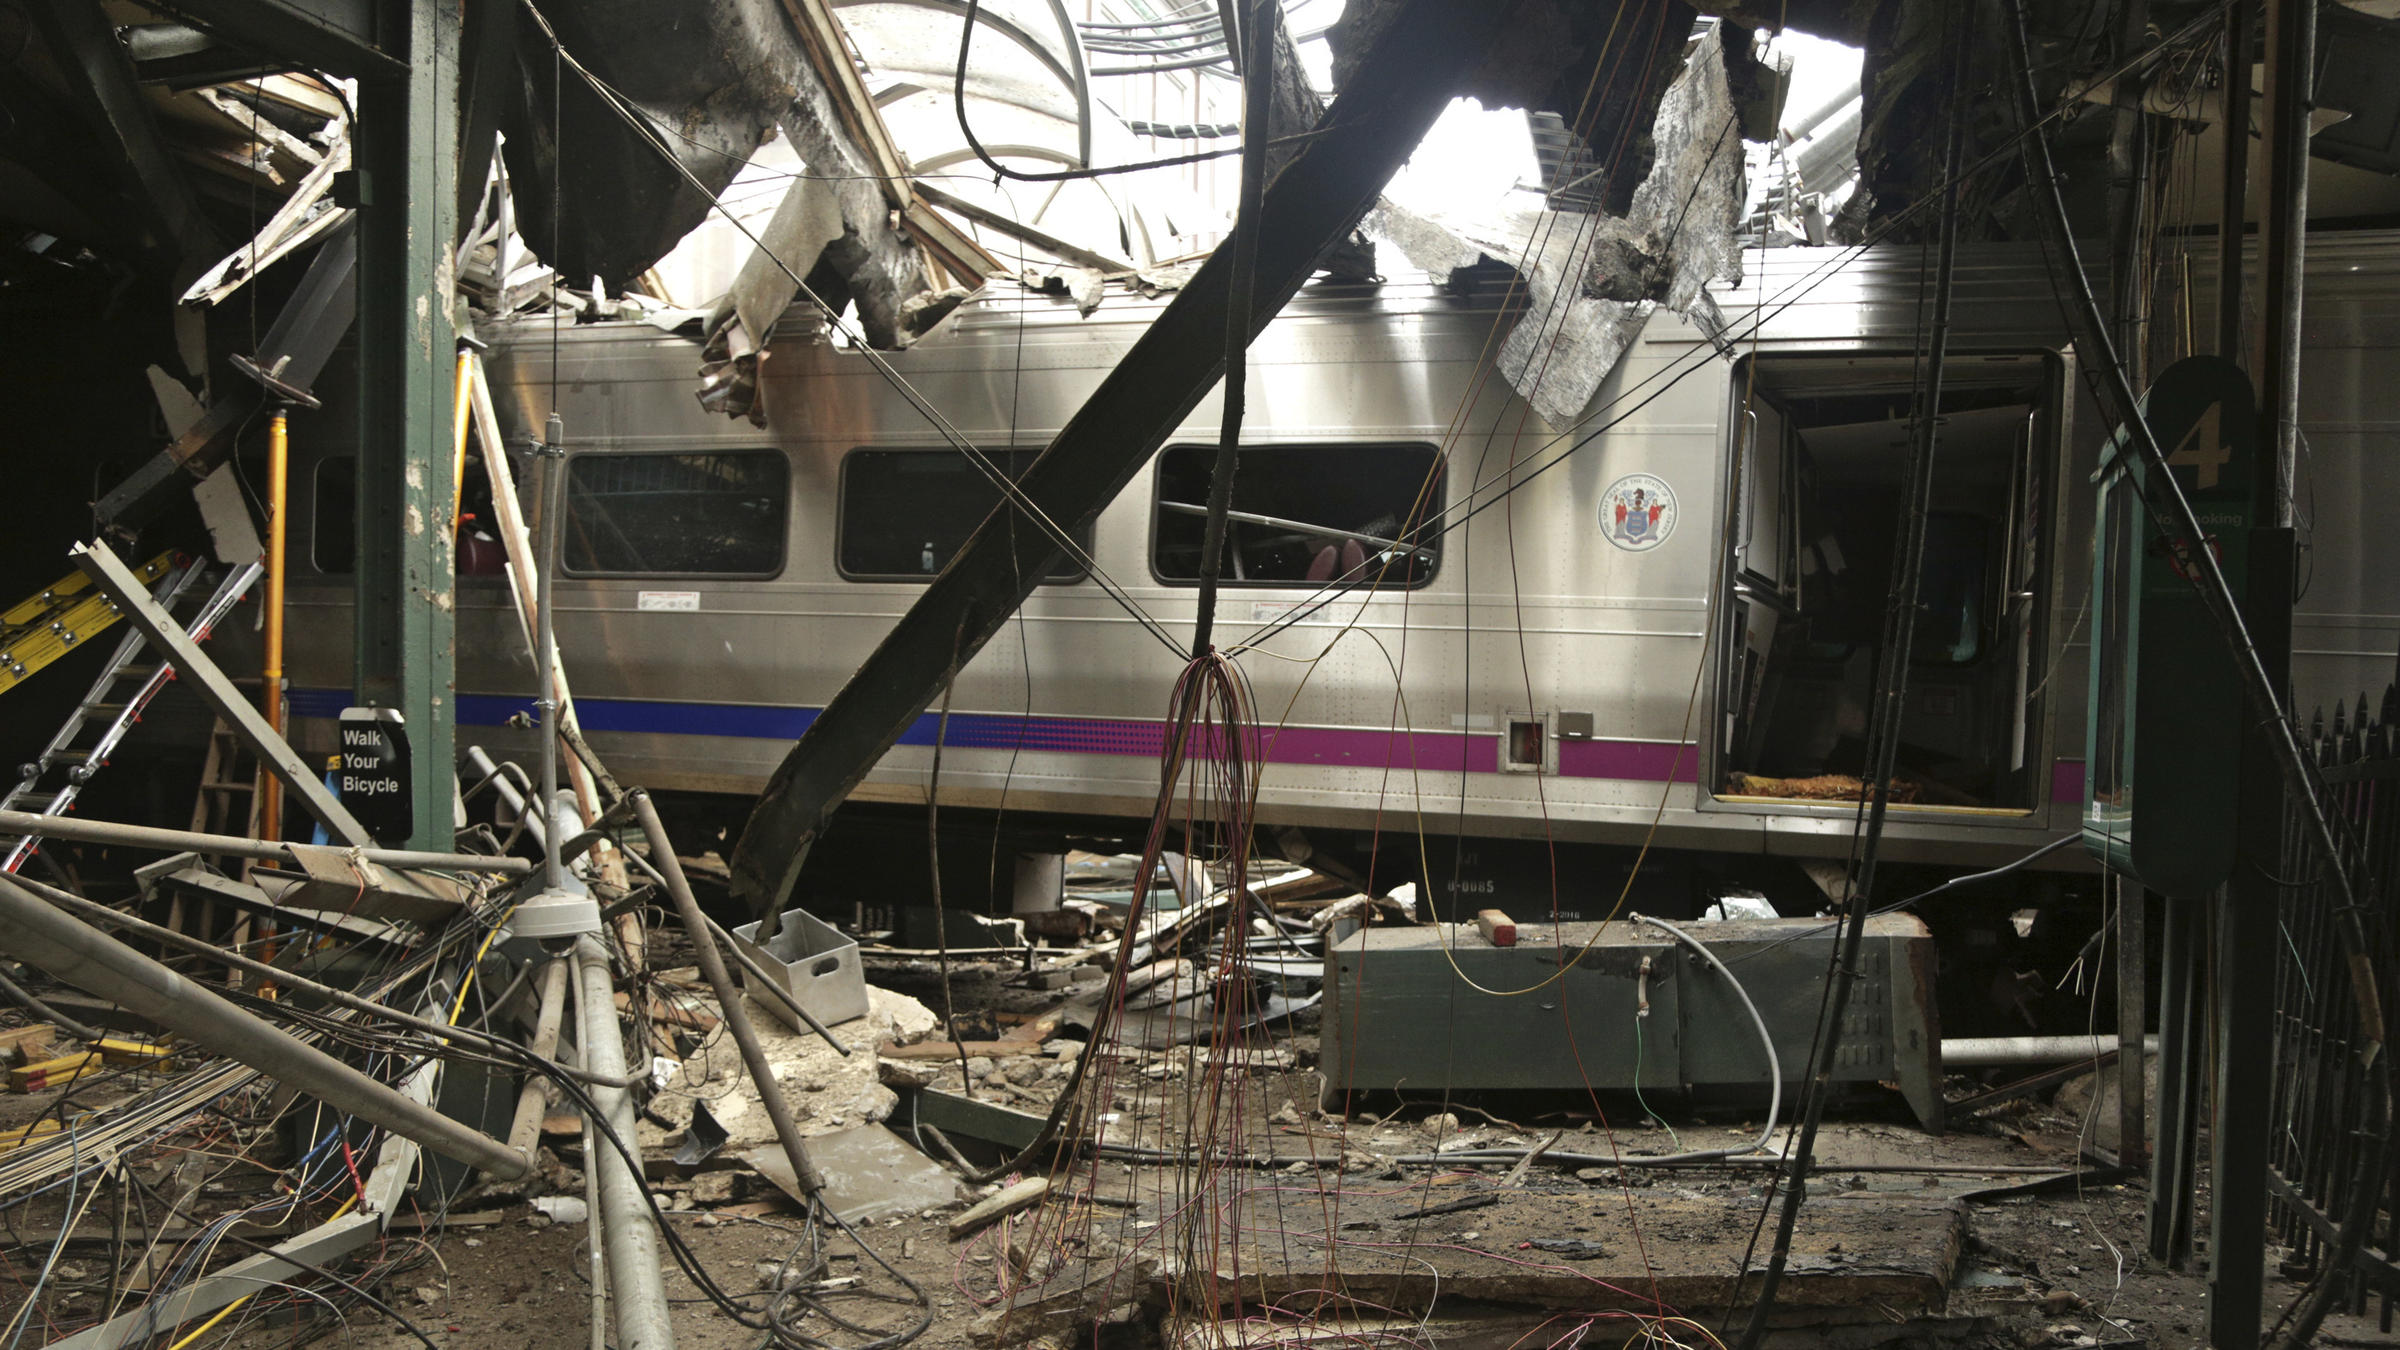 NTSB Investigators Discuss Causes Of NJ TRANSIT, LIRR Crashes